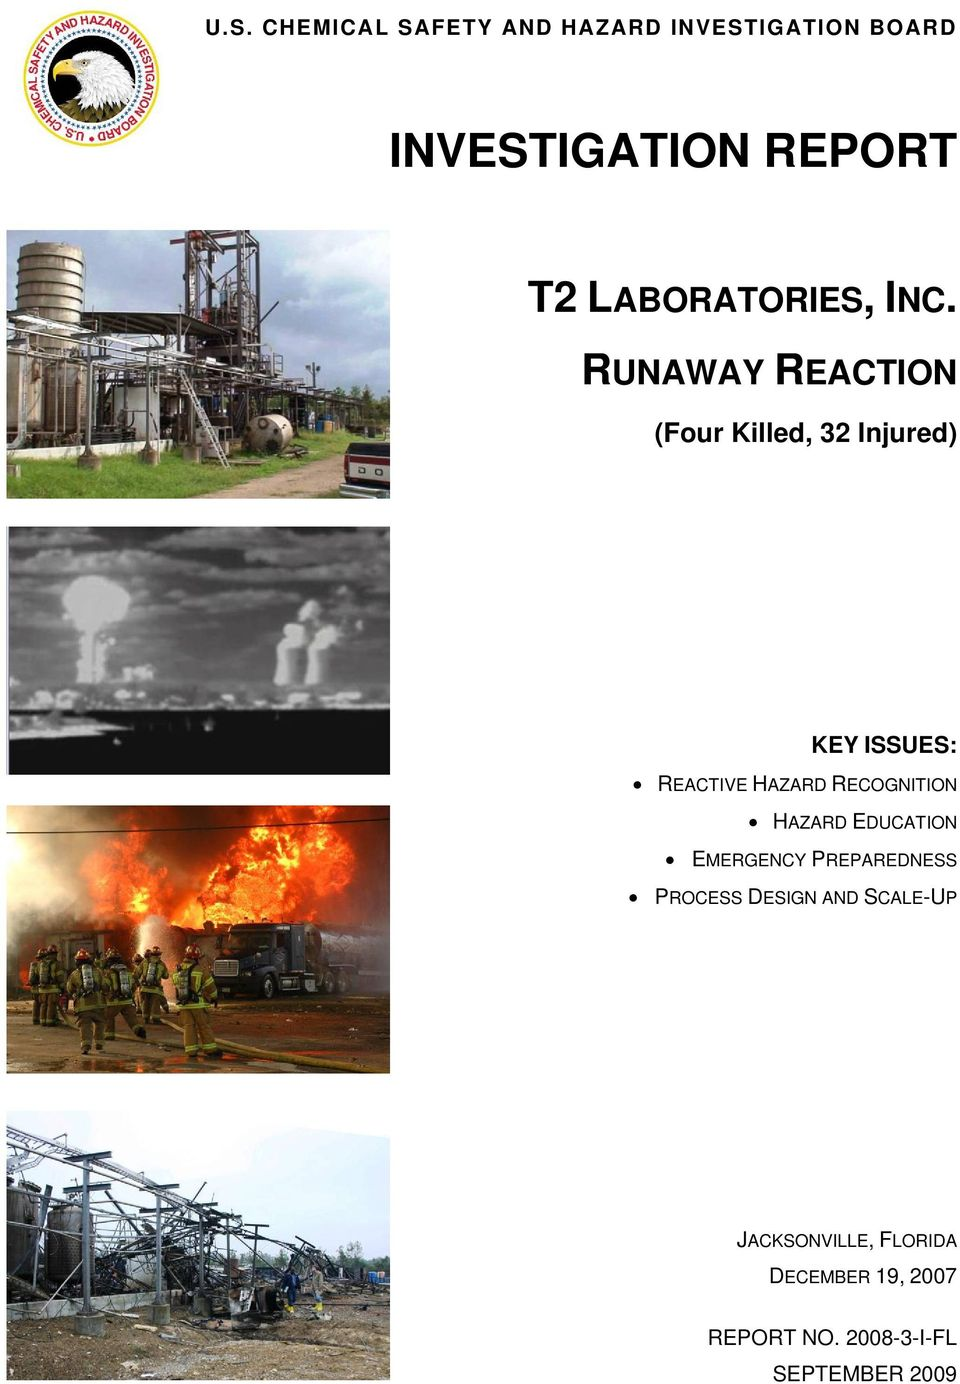 RUNAWAY REACTION (Four Killed, 32 Injured) KEY ISSUES: REACTIVE HAZARD RECOGNITION